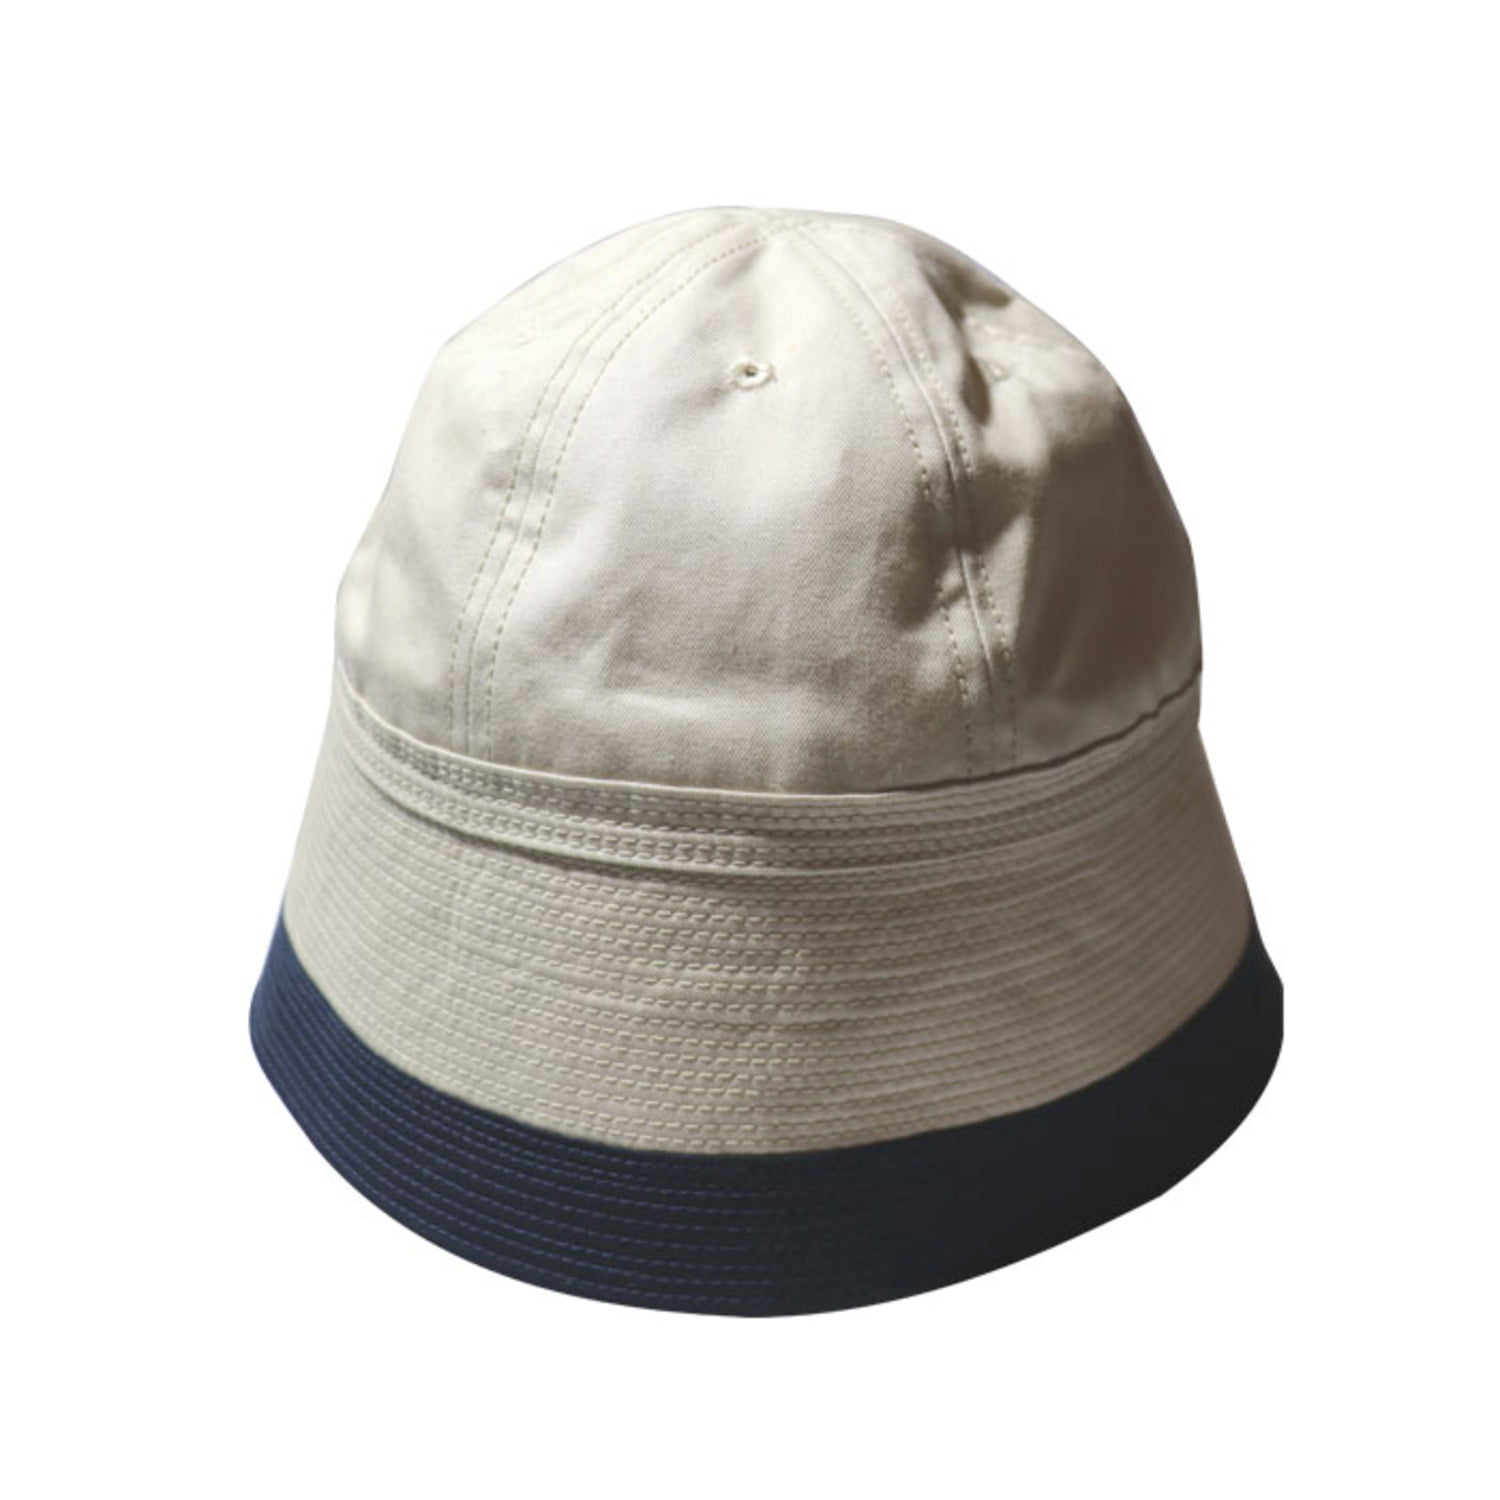 2 Tone Sailor Hat (Natural)